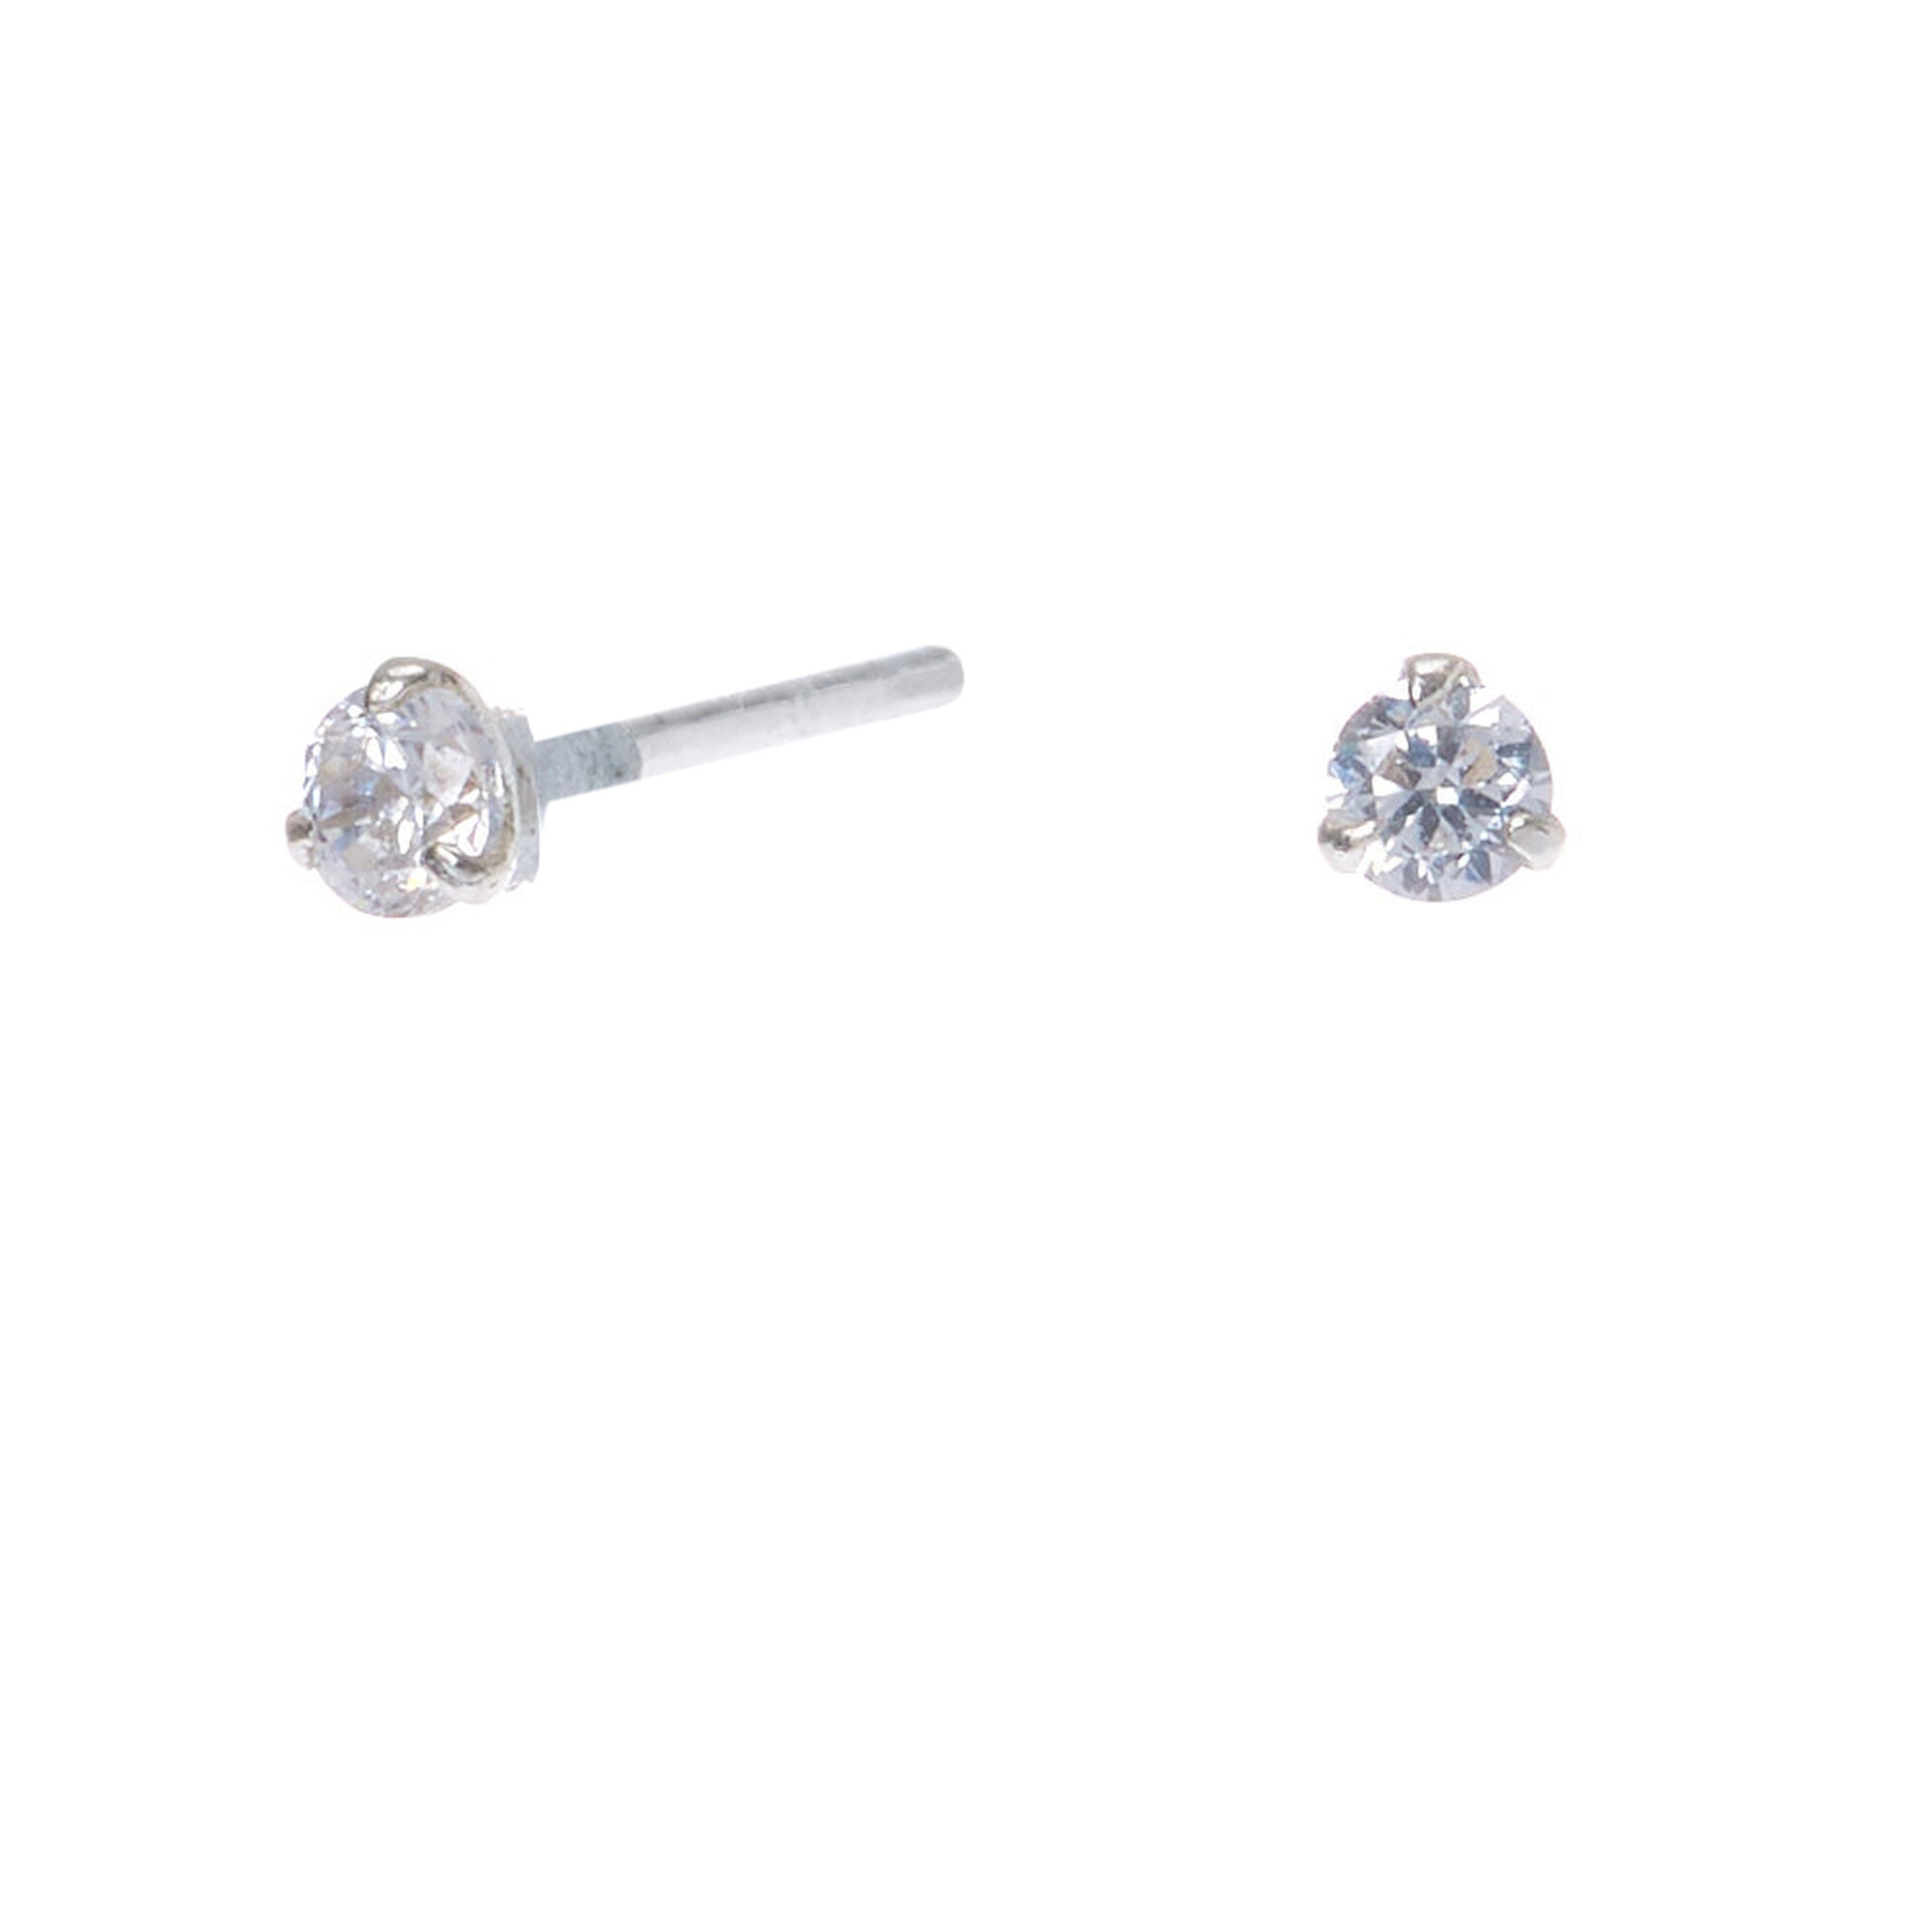 diamond grey cut products earring danabronfman small of earrings rose studs round pyramidal stud copy